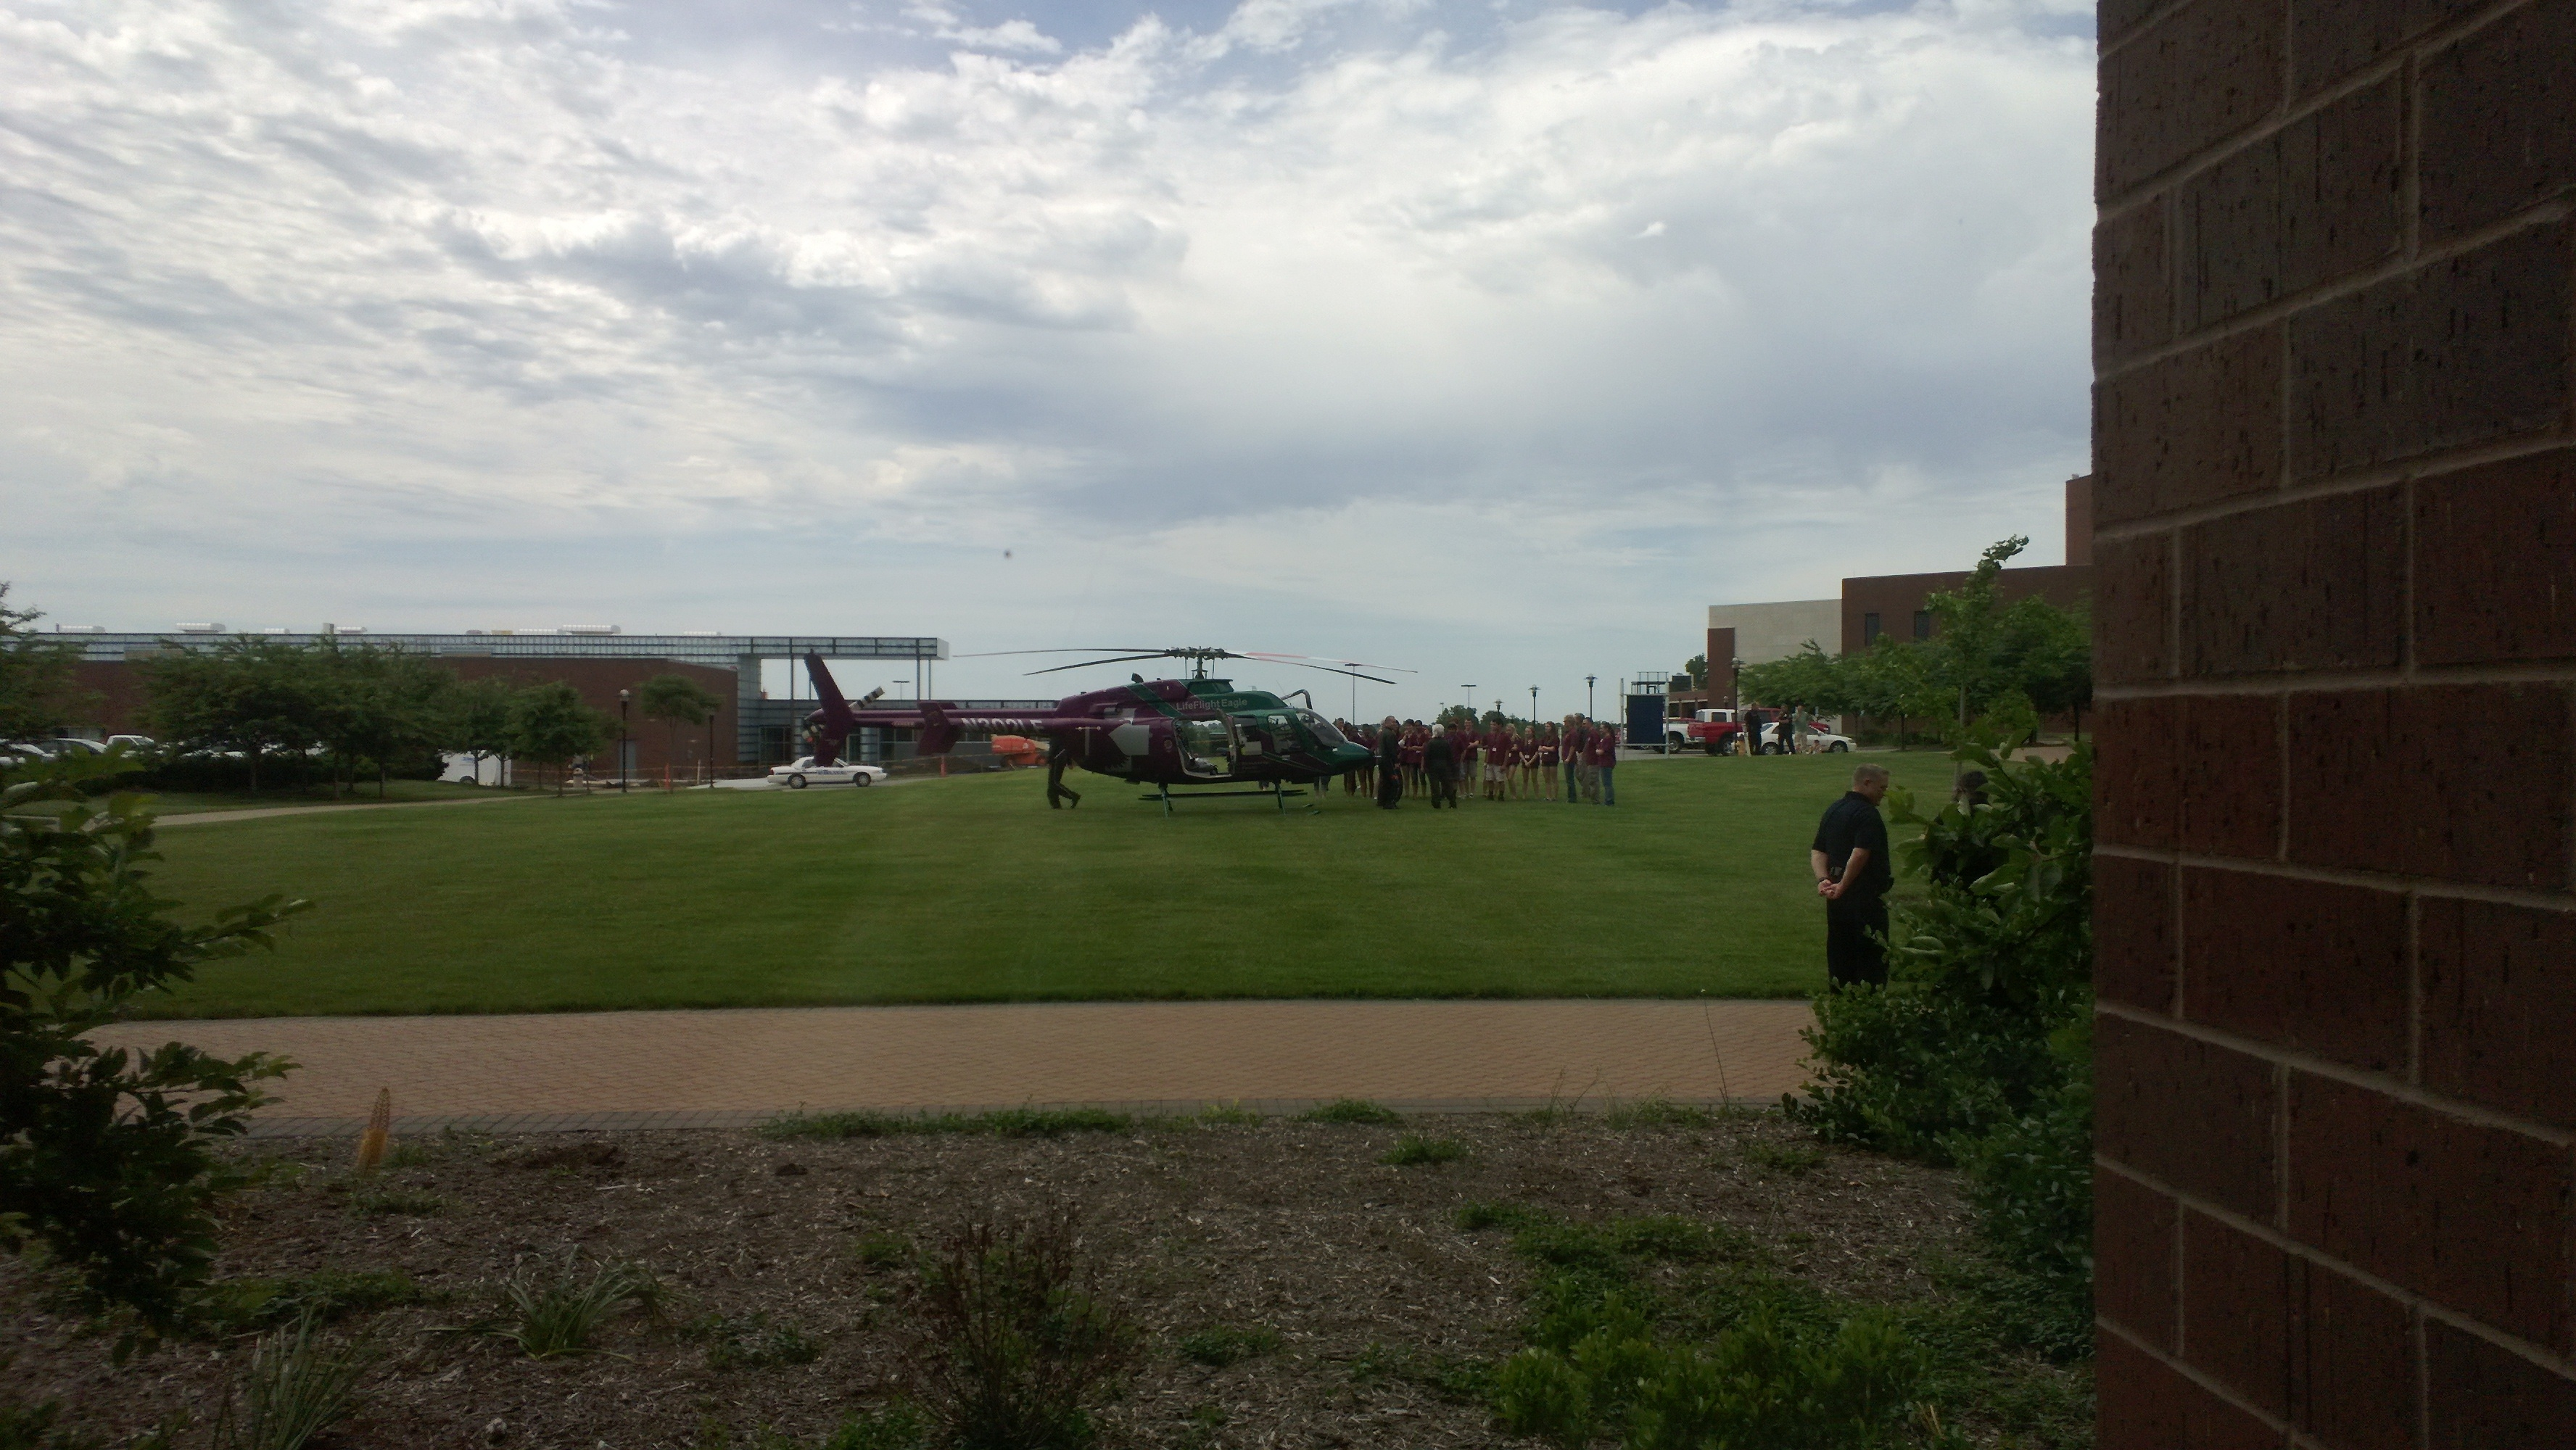 LifeFlight Eagle helicopter lands on the grassy area to the south of the Regnier Center as part of the training offered by the college's Men in Nurses Training program